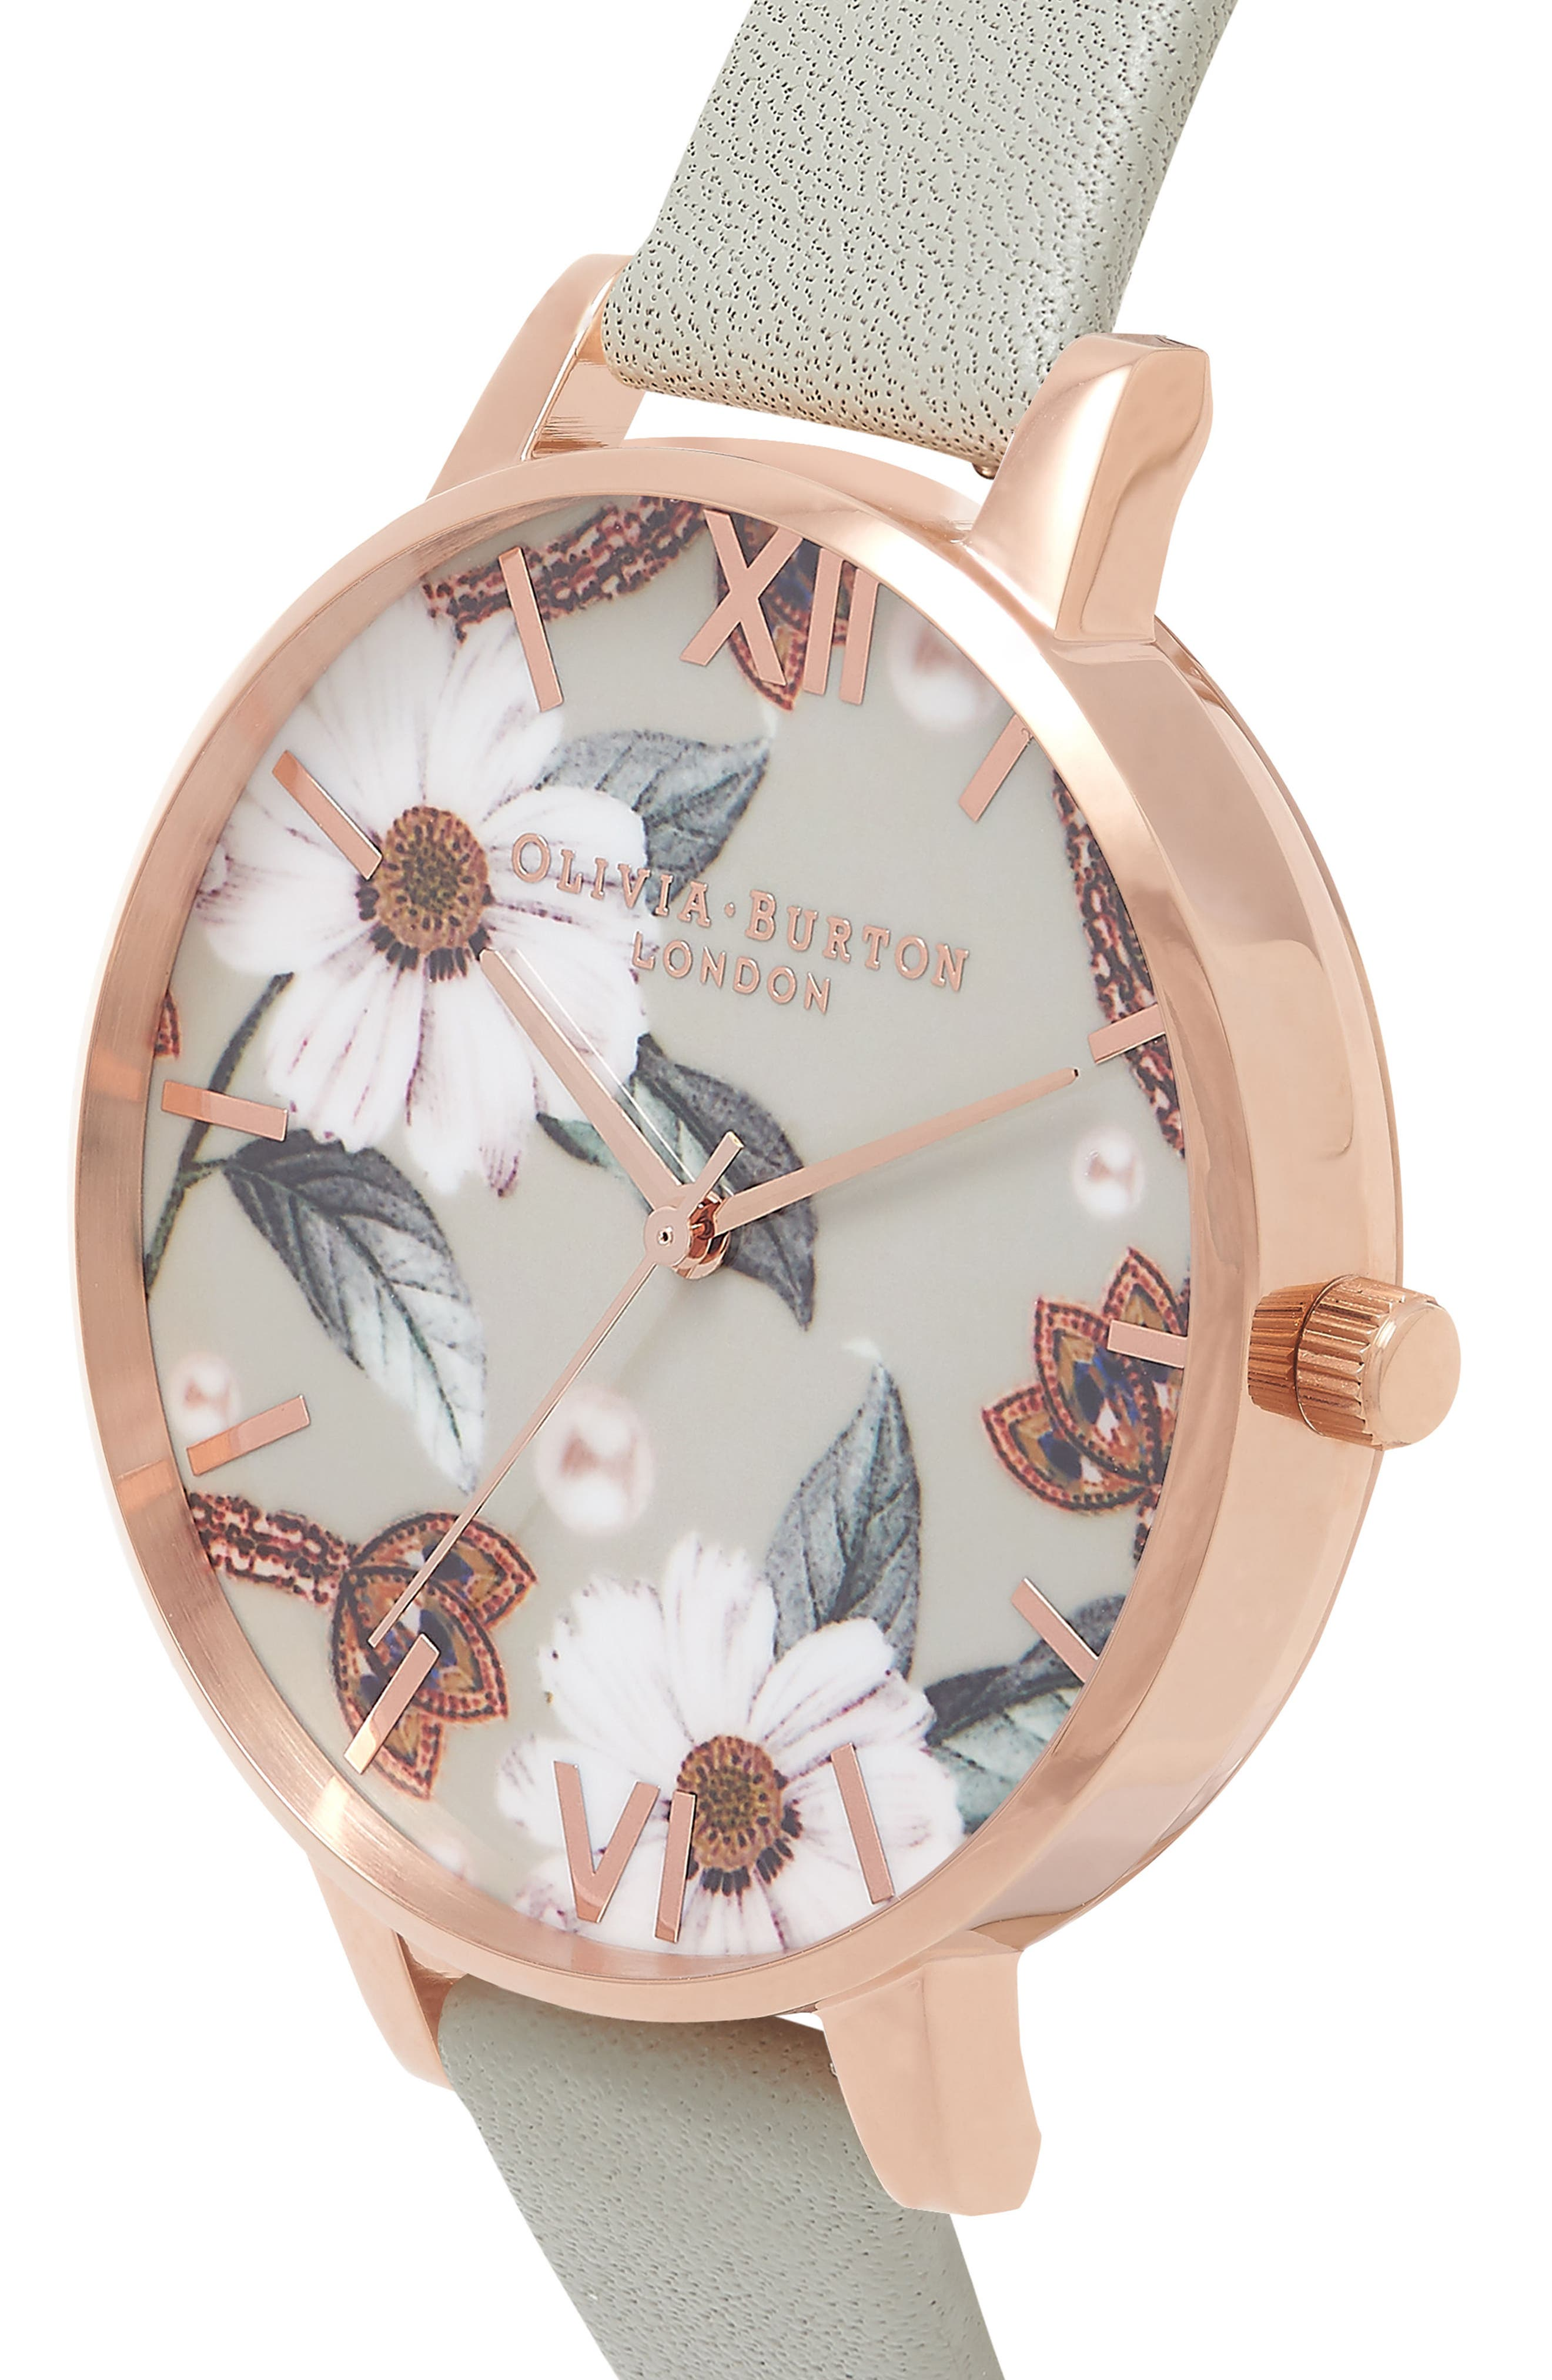 OLIVIA BURTON, Bejewelled Leather Strap Watch, 38mm, Alternate thumbnail 6, color, GREY/ FLORAL/ ROSE GOLD